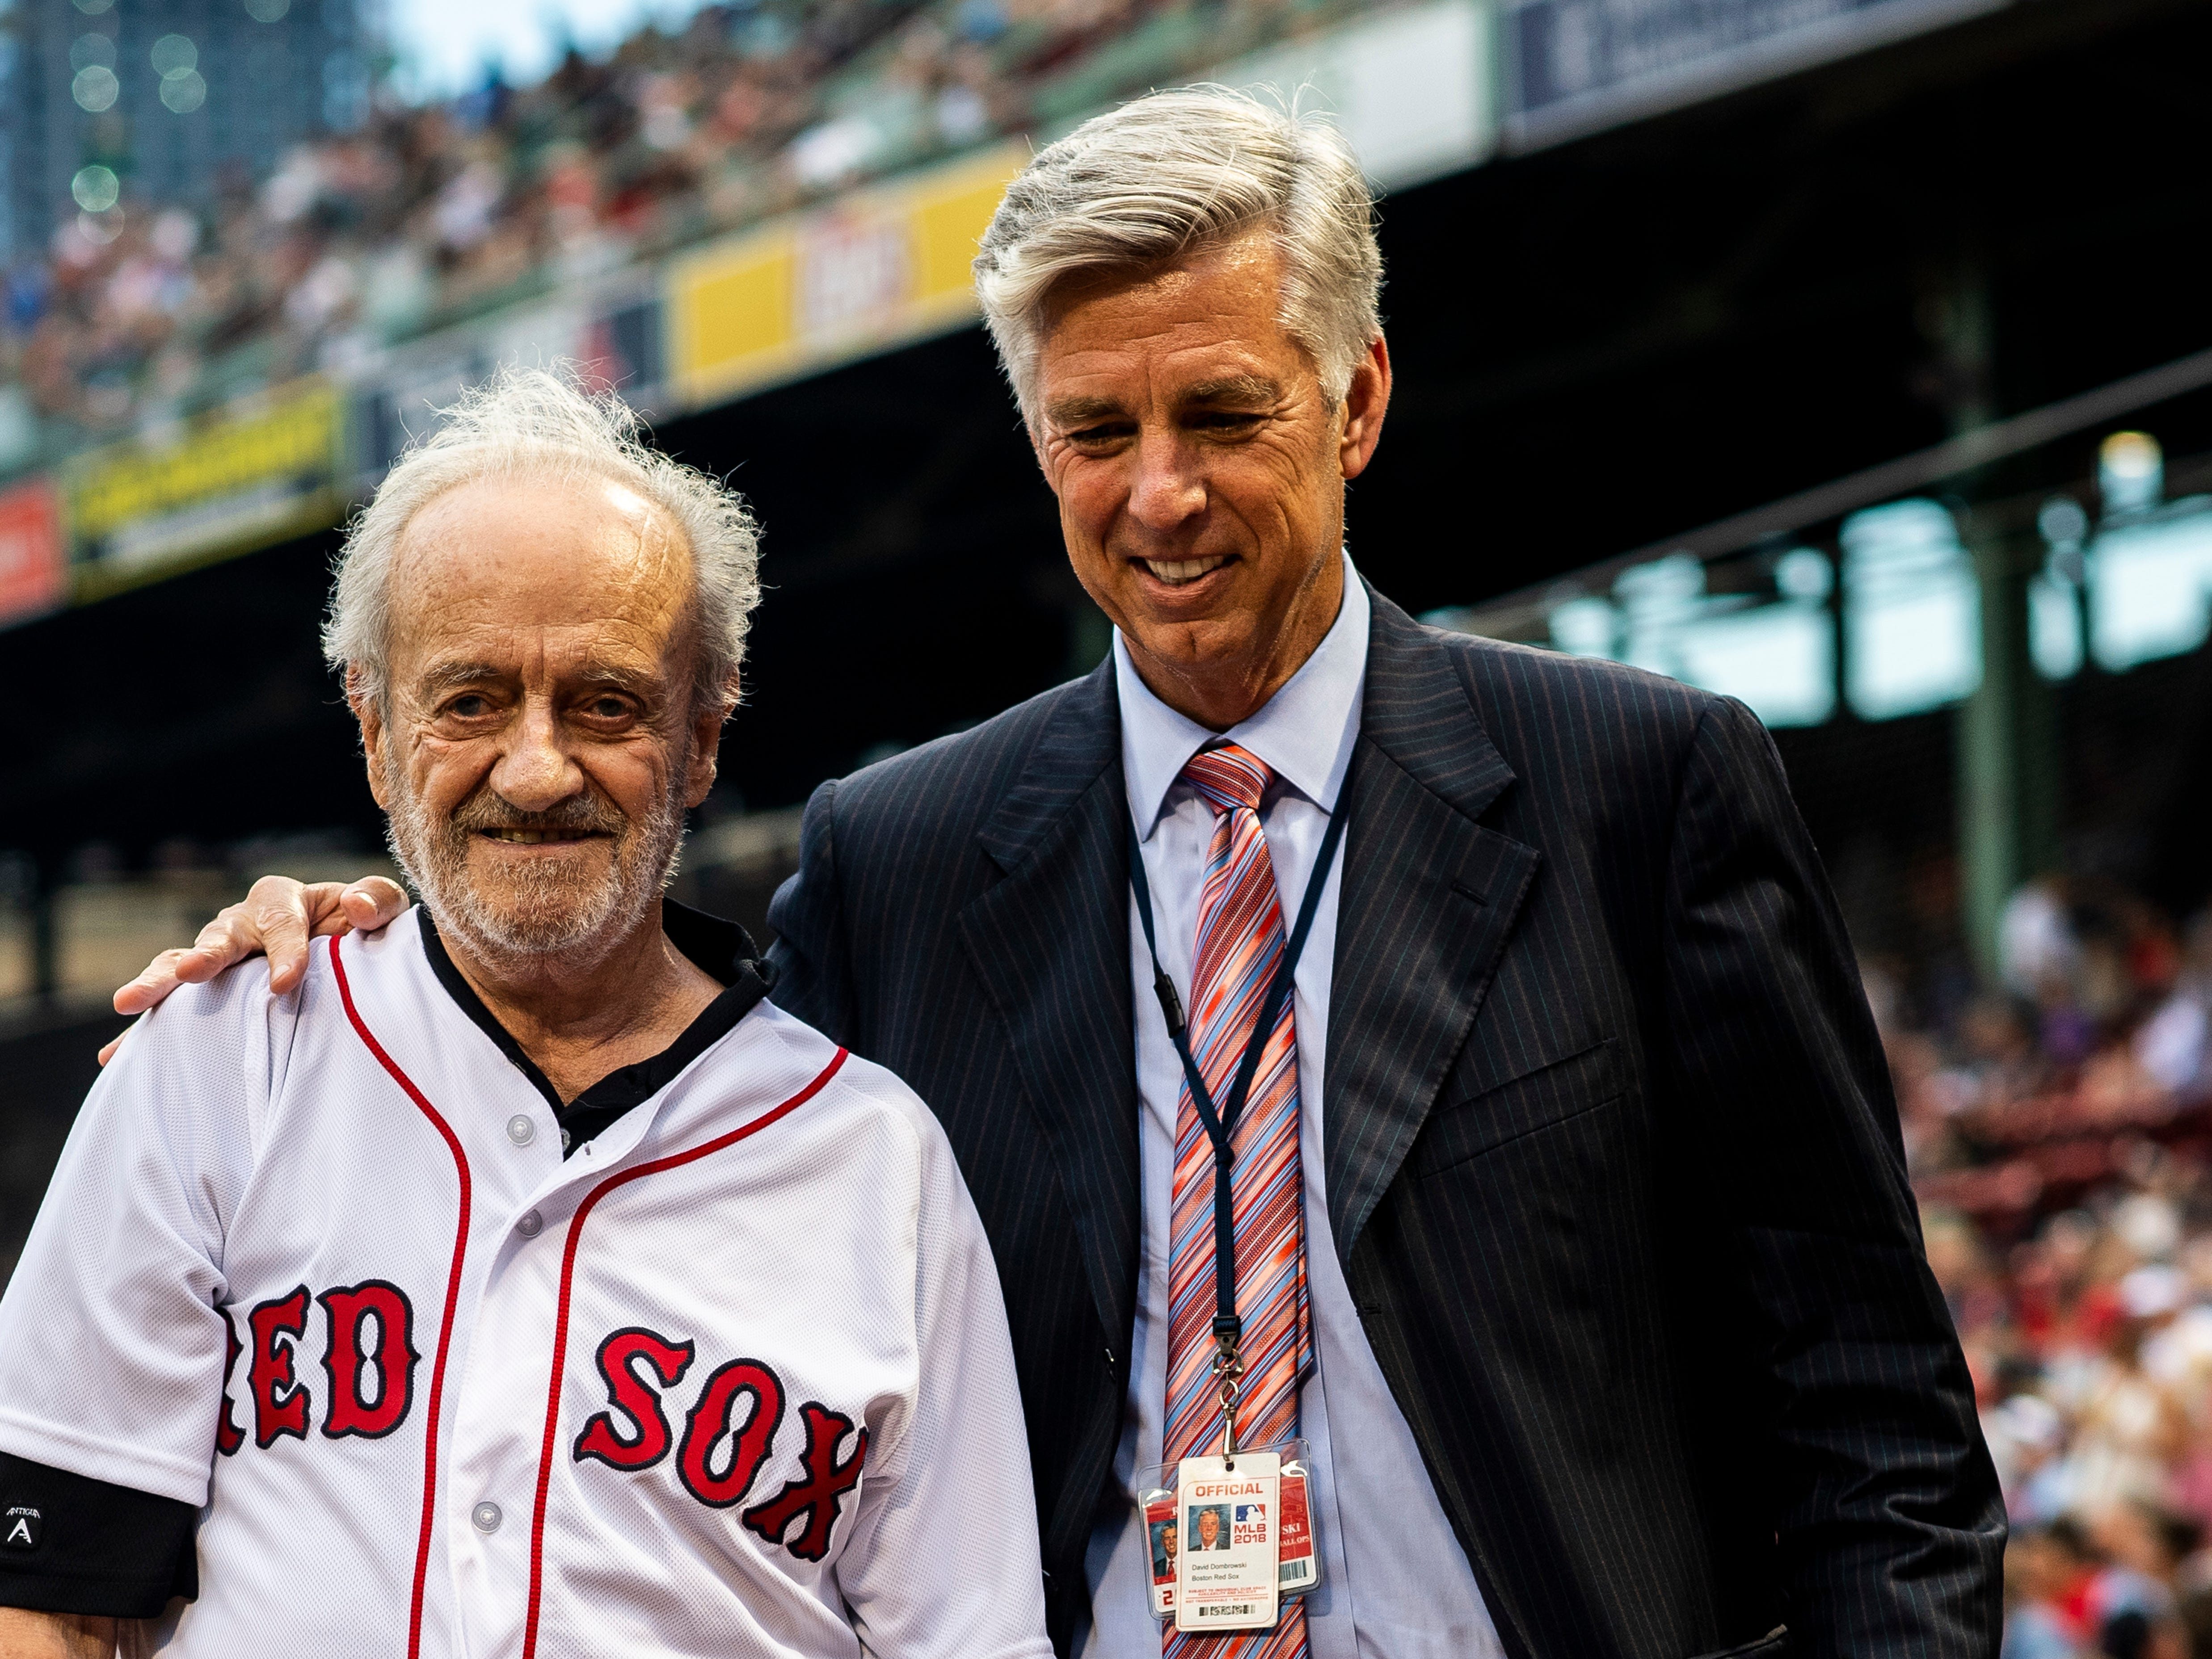 August 2, 2018, Boston, MA: Roland Hemond walks with Boston Red Sox President of Baseball Operations Dave Dombrowskibefore his Ceremonial First Pitch before the Boston Red Sox face the New York Yankees at Fenway Park in Boston, Massachusetts on Thursday, August 2, 2018. (Photo by Matthew Thomas/Boston Red Sox)